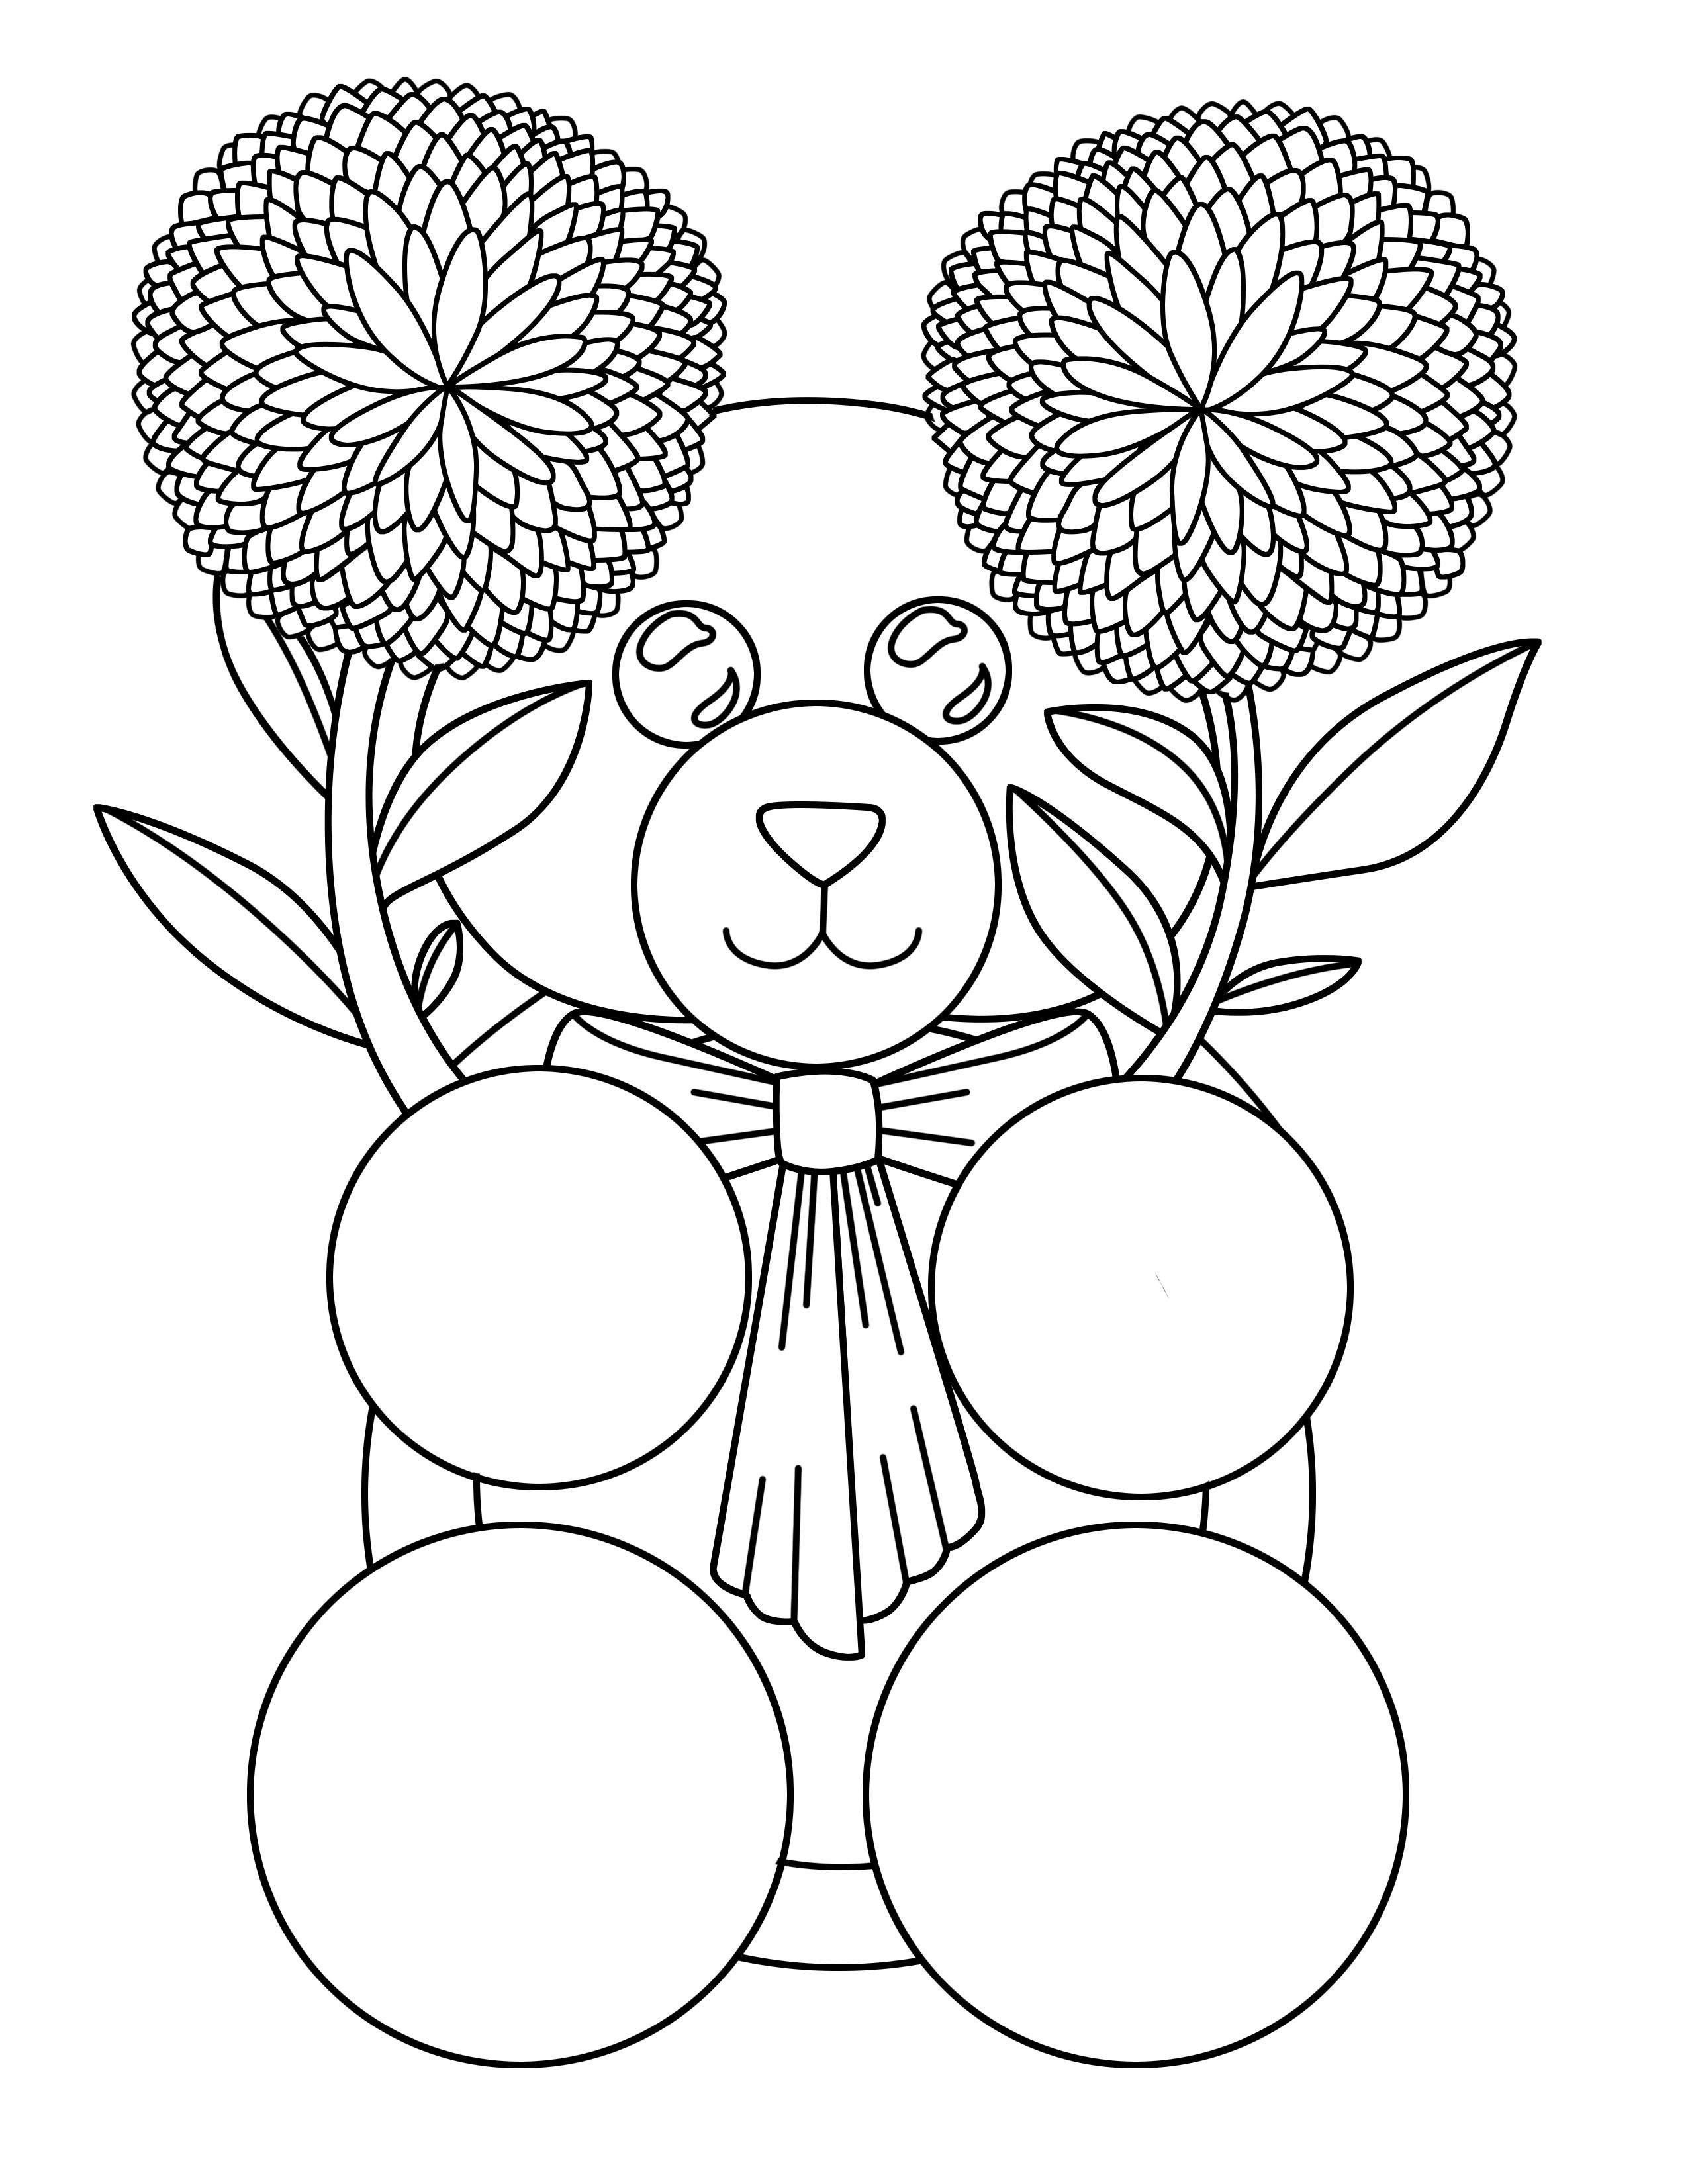 A Cute Little Bear Coloring Page You Can Print And Color Bear